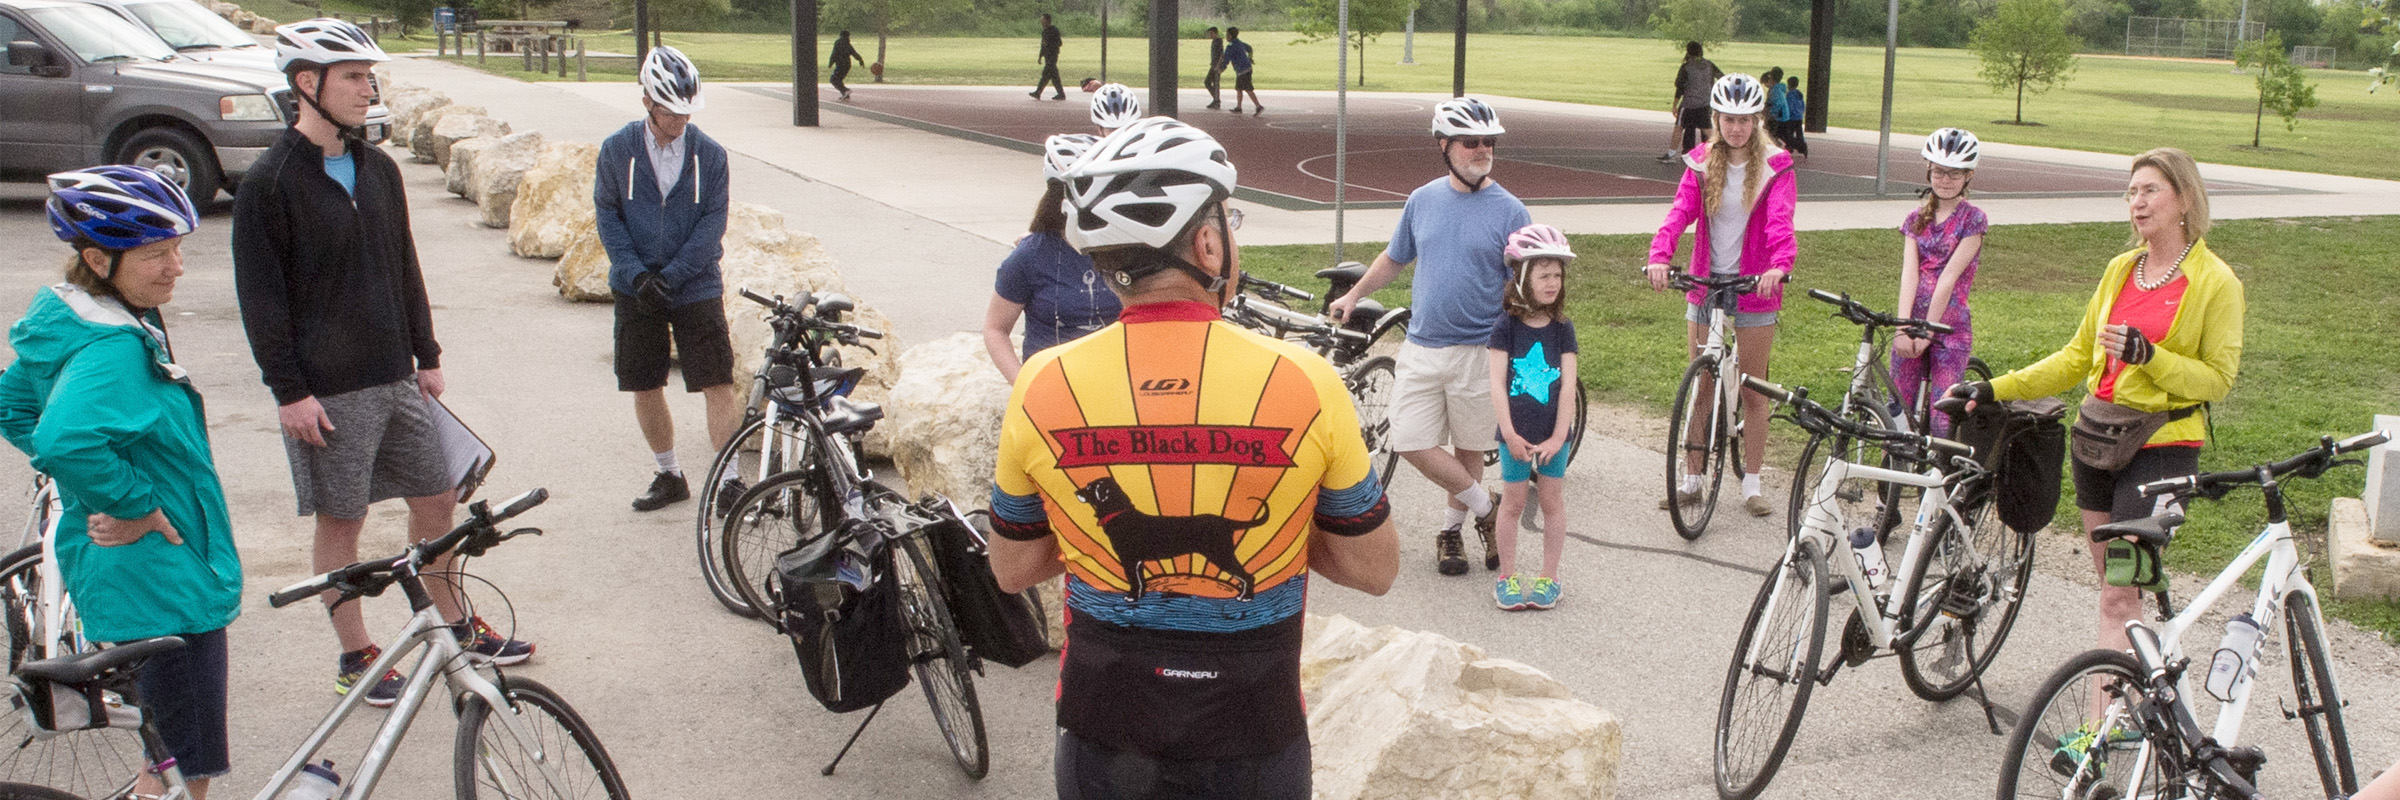 Cycling San Antonio Guided Bicycle Tours